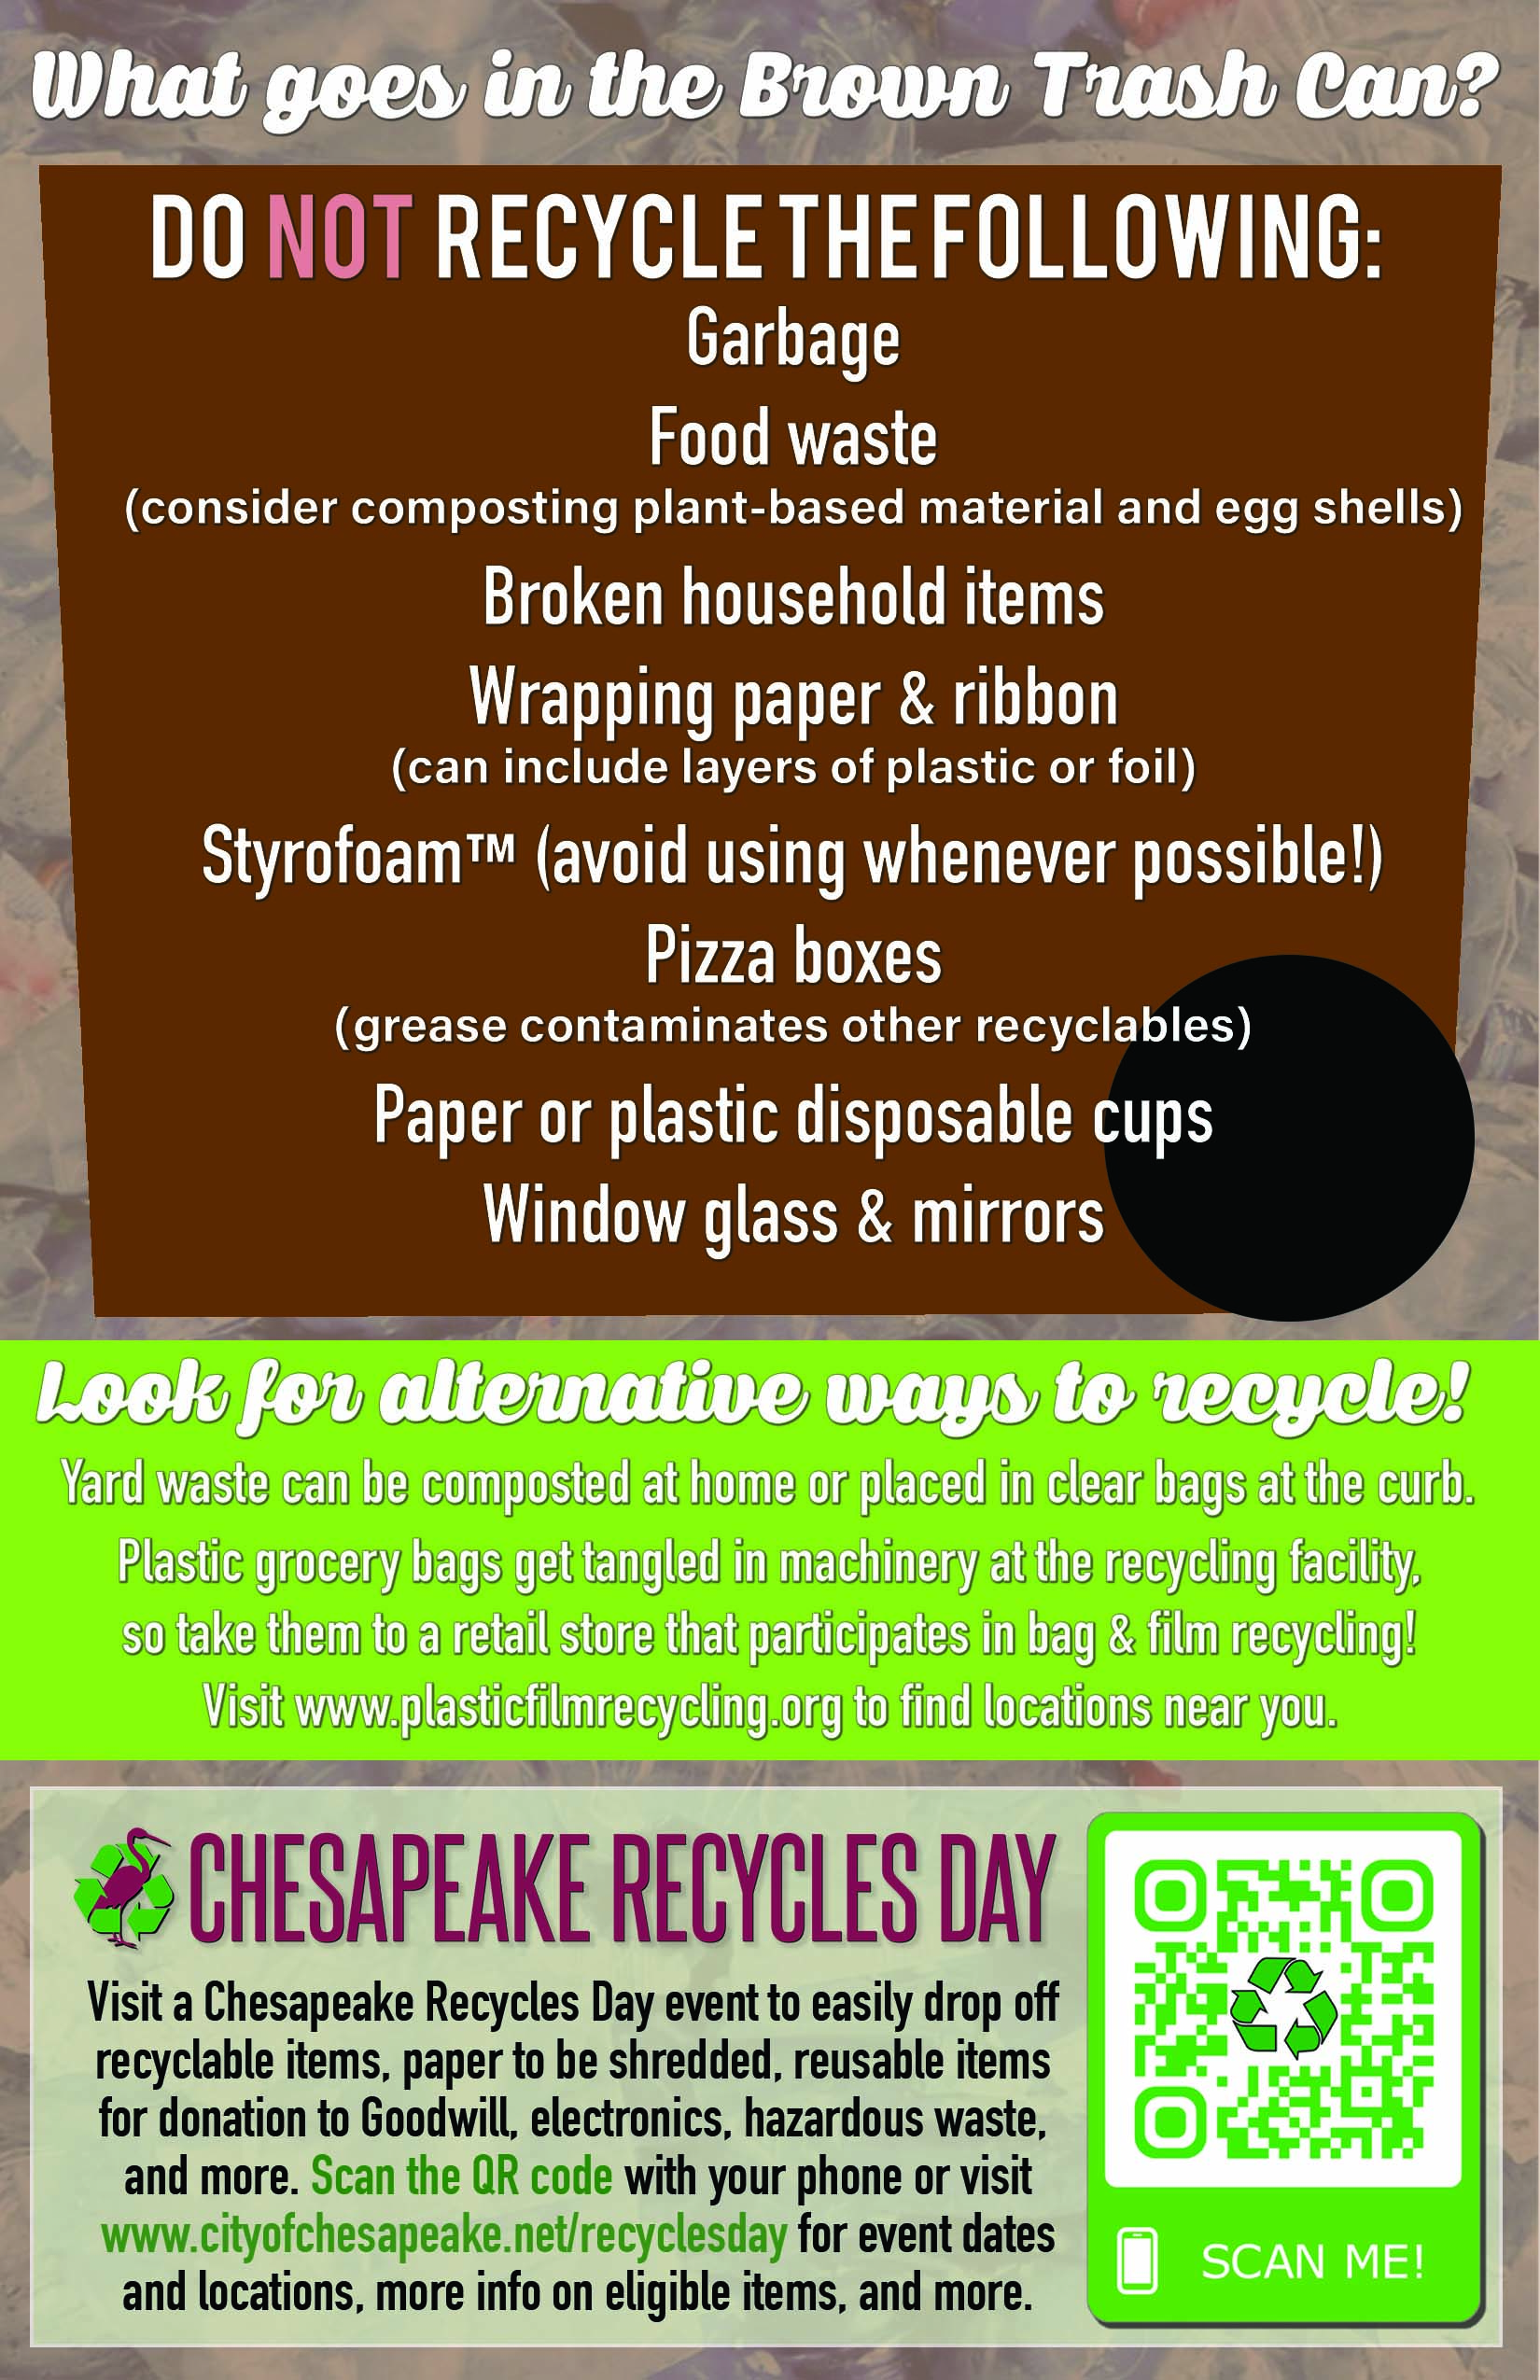 CEIC Recycling Flyer Side 2a